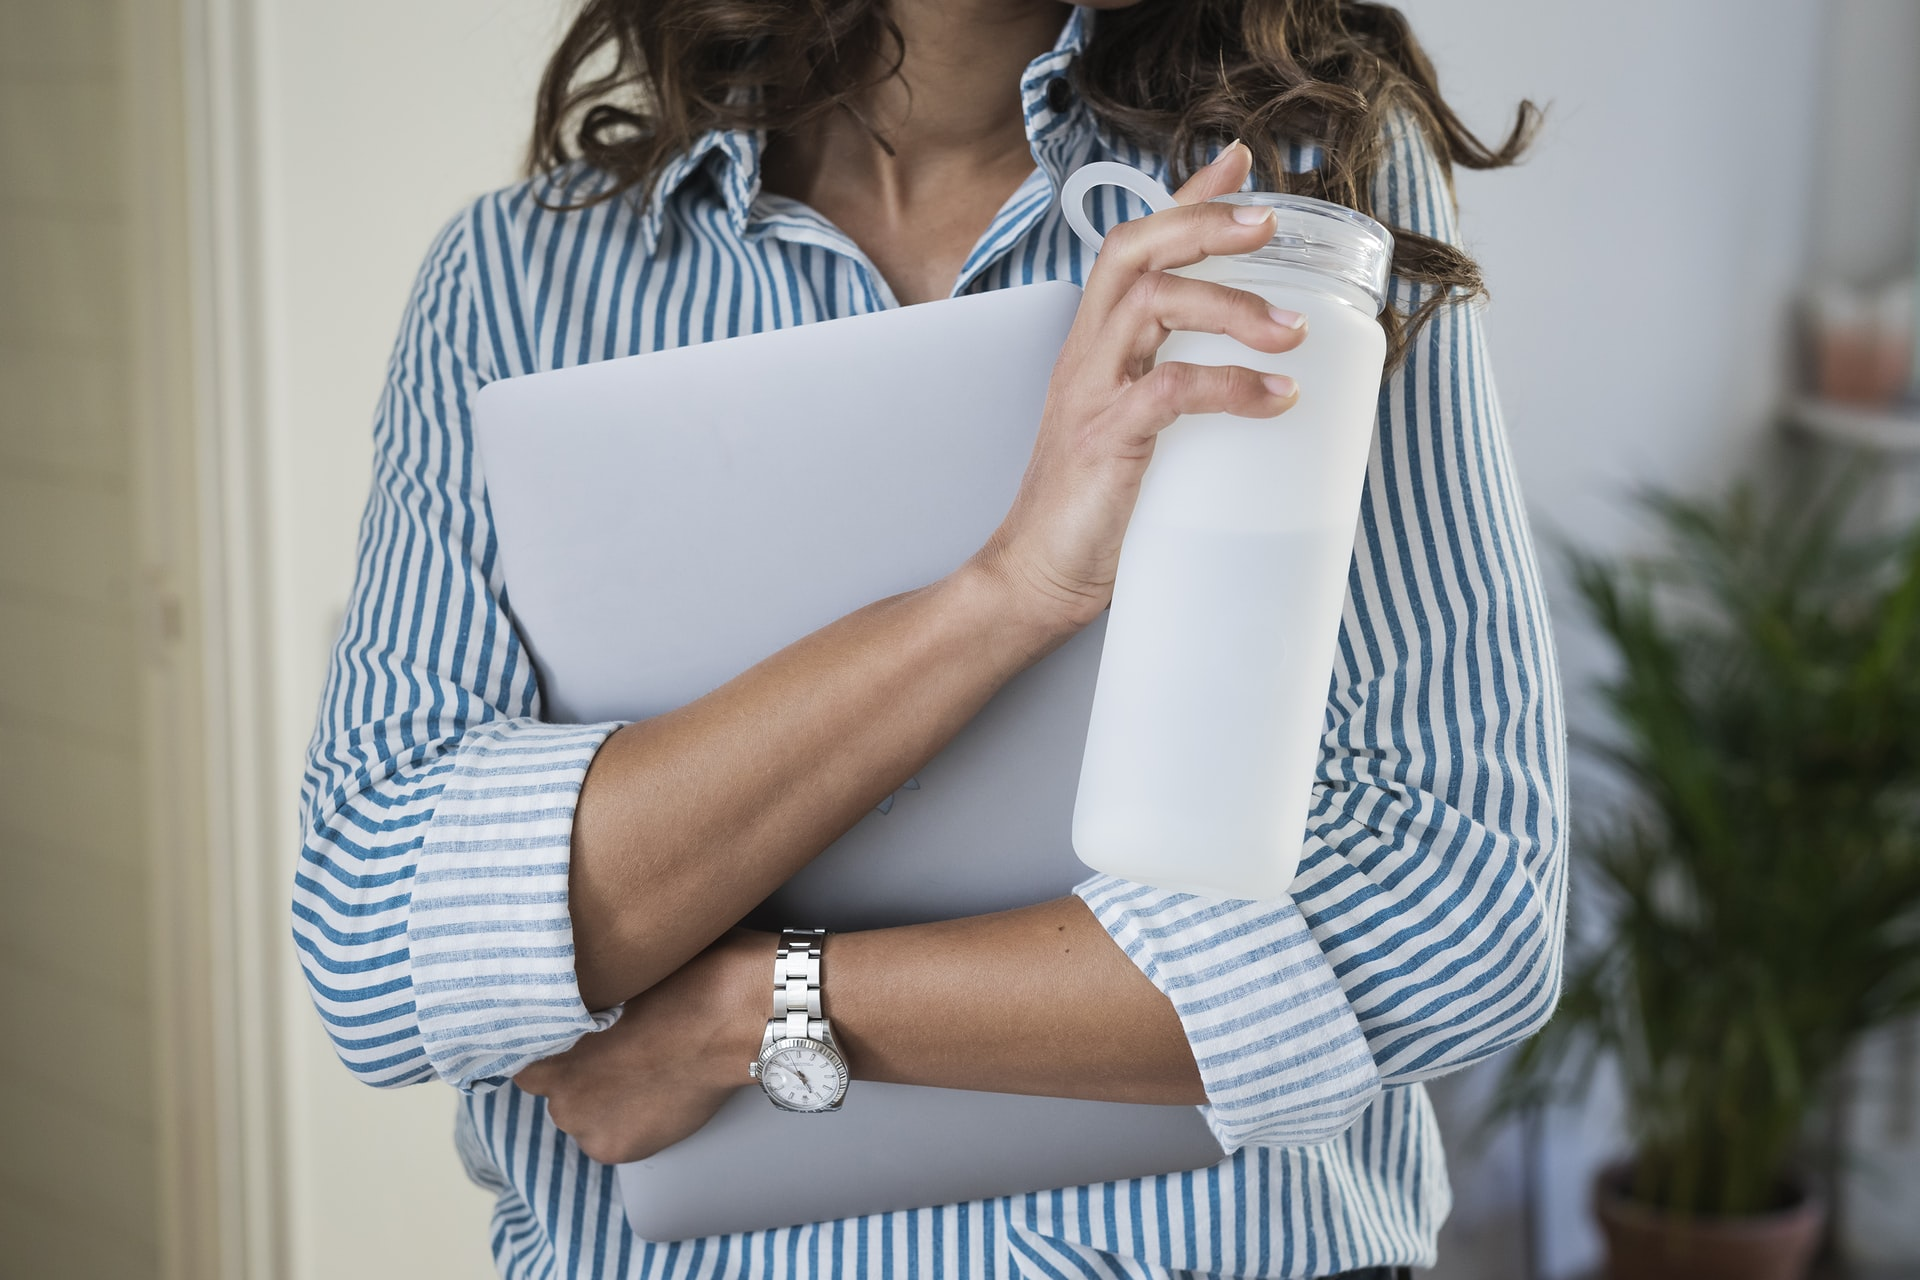 woman in white and blue shirt holding a white bottle and laptop